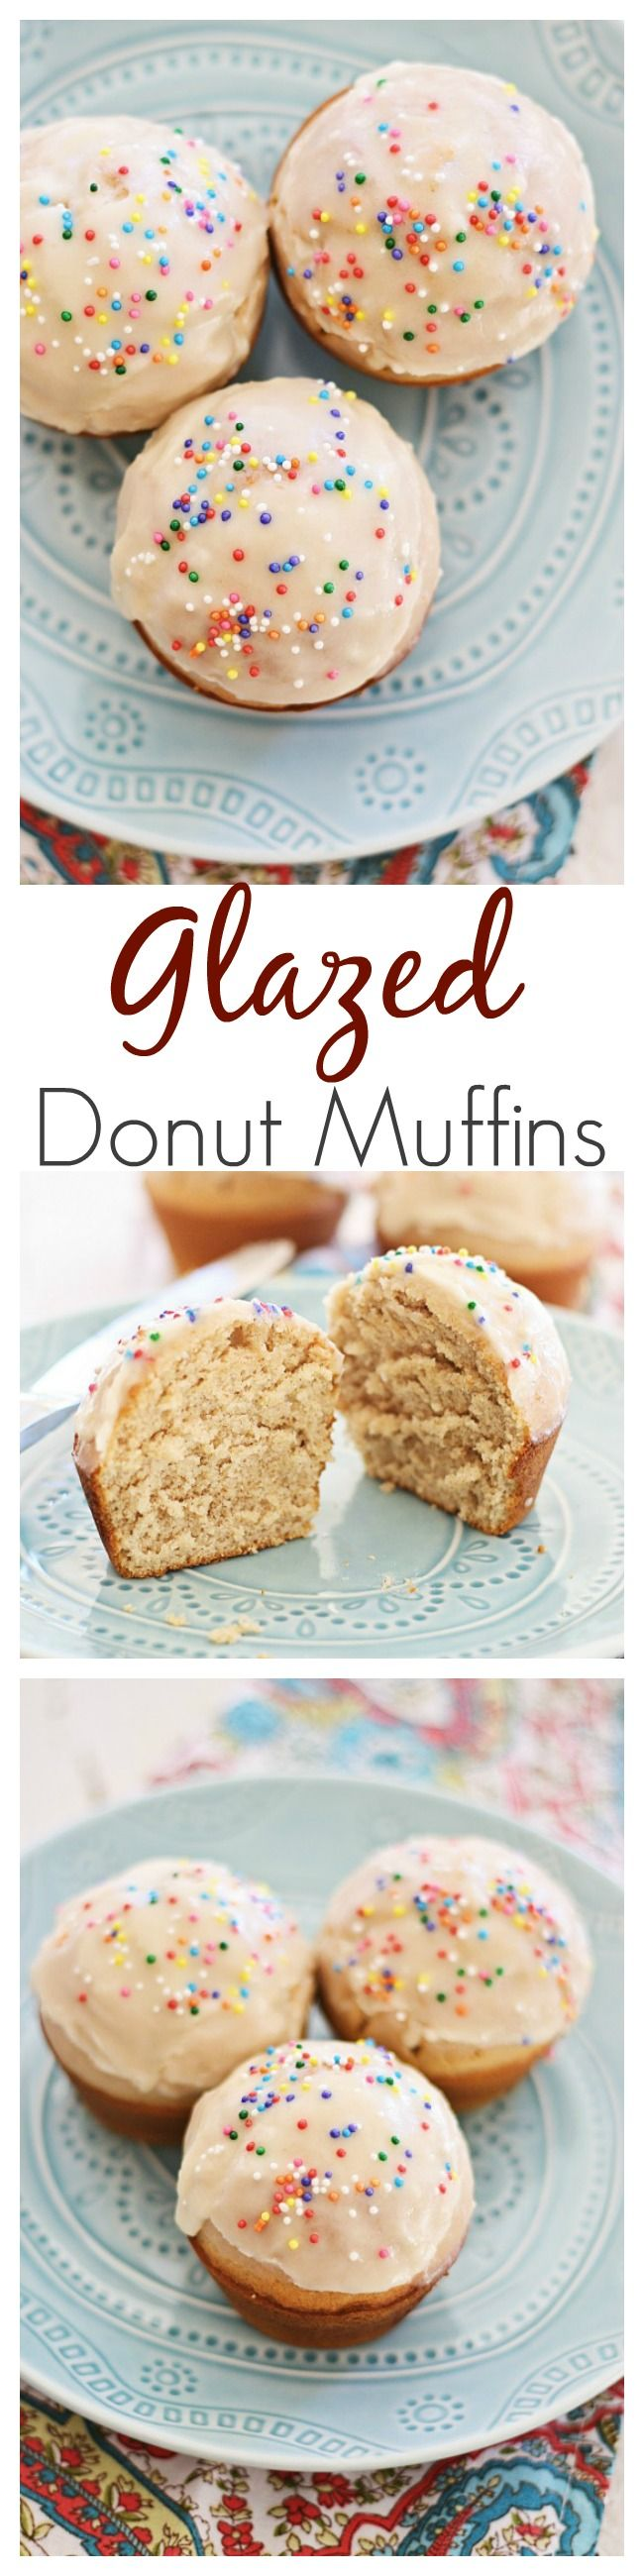 Dad would love this breakfast muffin - Glazed Doughnut Muffins recipe by combining two favorites into one treat: doughnut, muffins, and glazed with sugar. | rasamalaysia.com